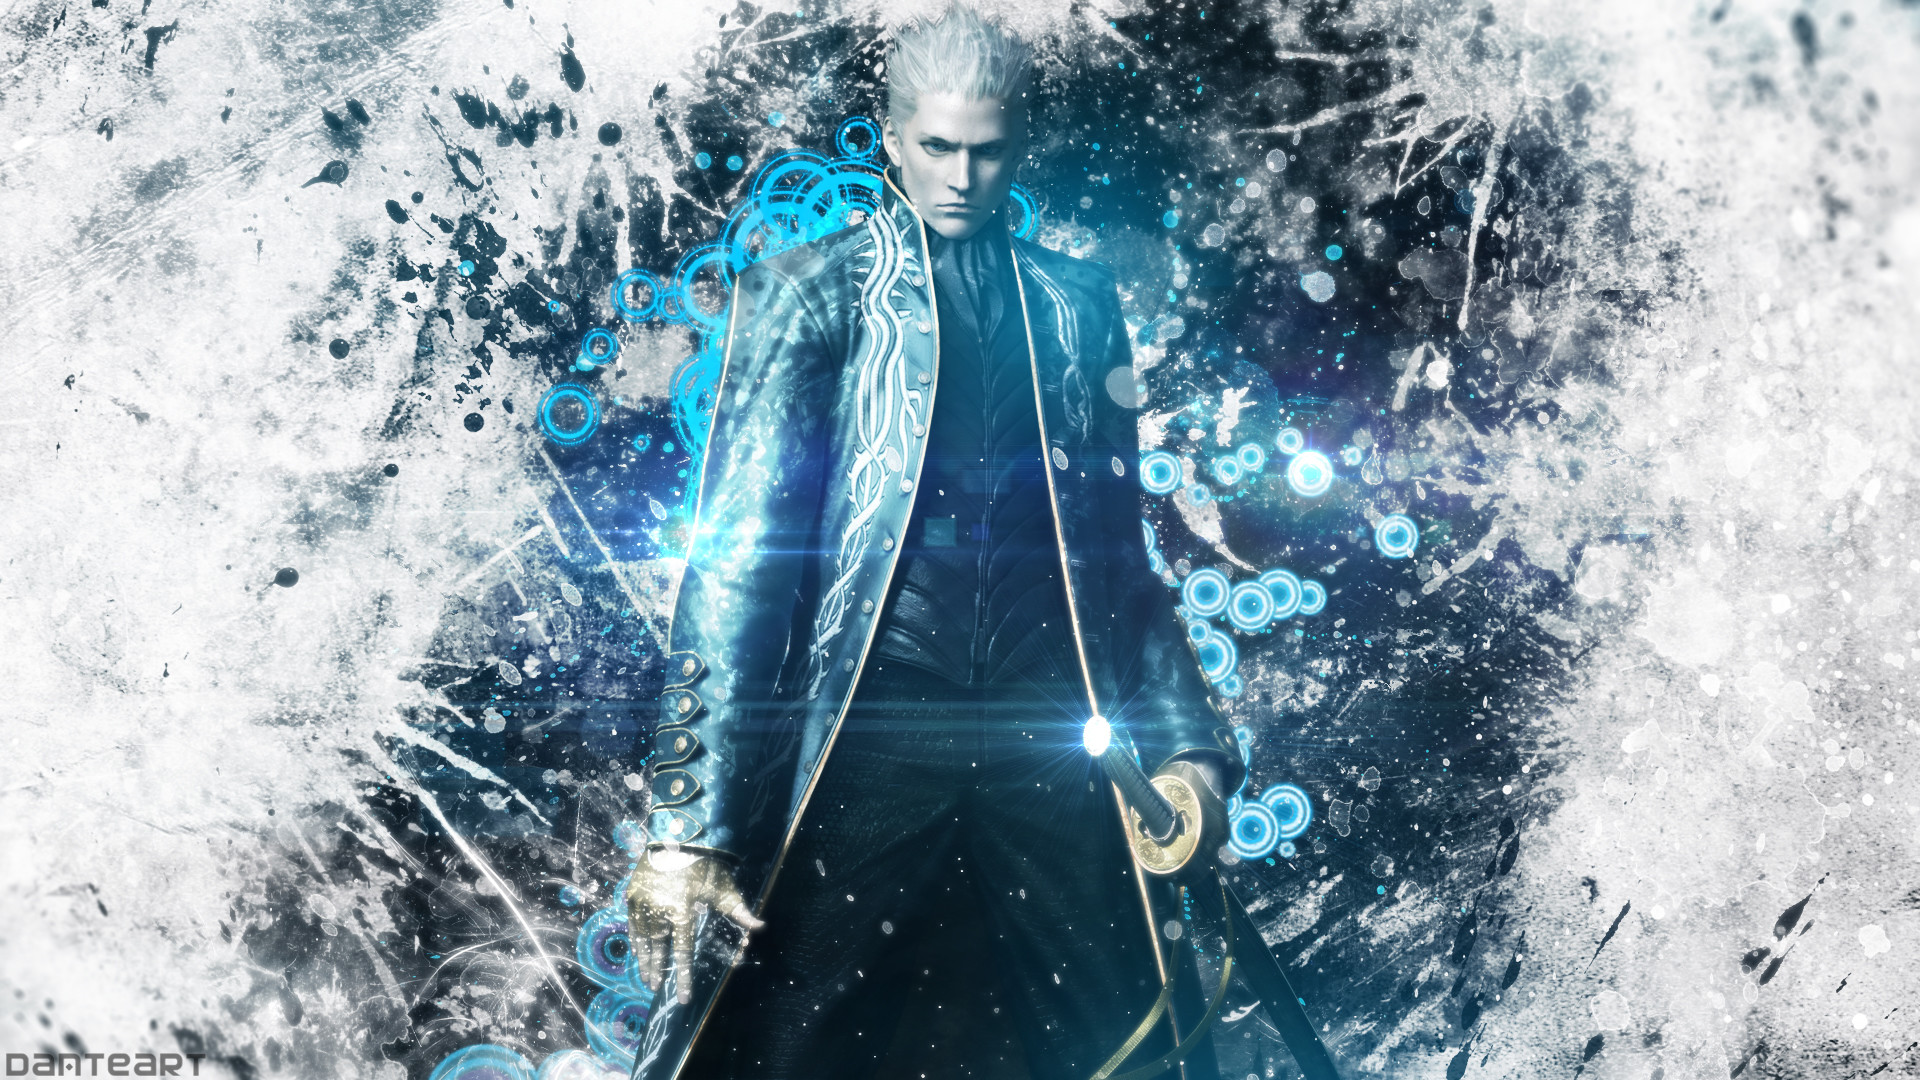 Vergil Yamato Sword Hd Wallpaper: Devil May Cry 4 Wallpaper (73+ Pictures